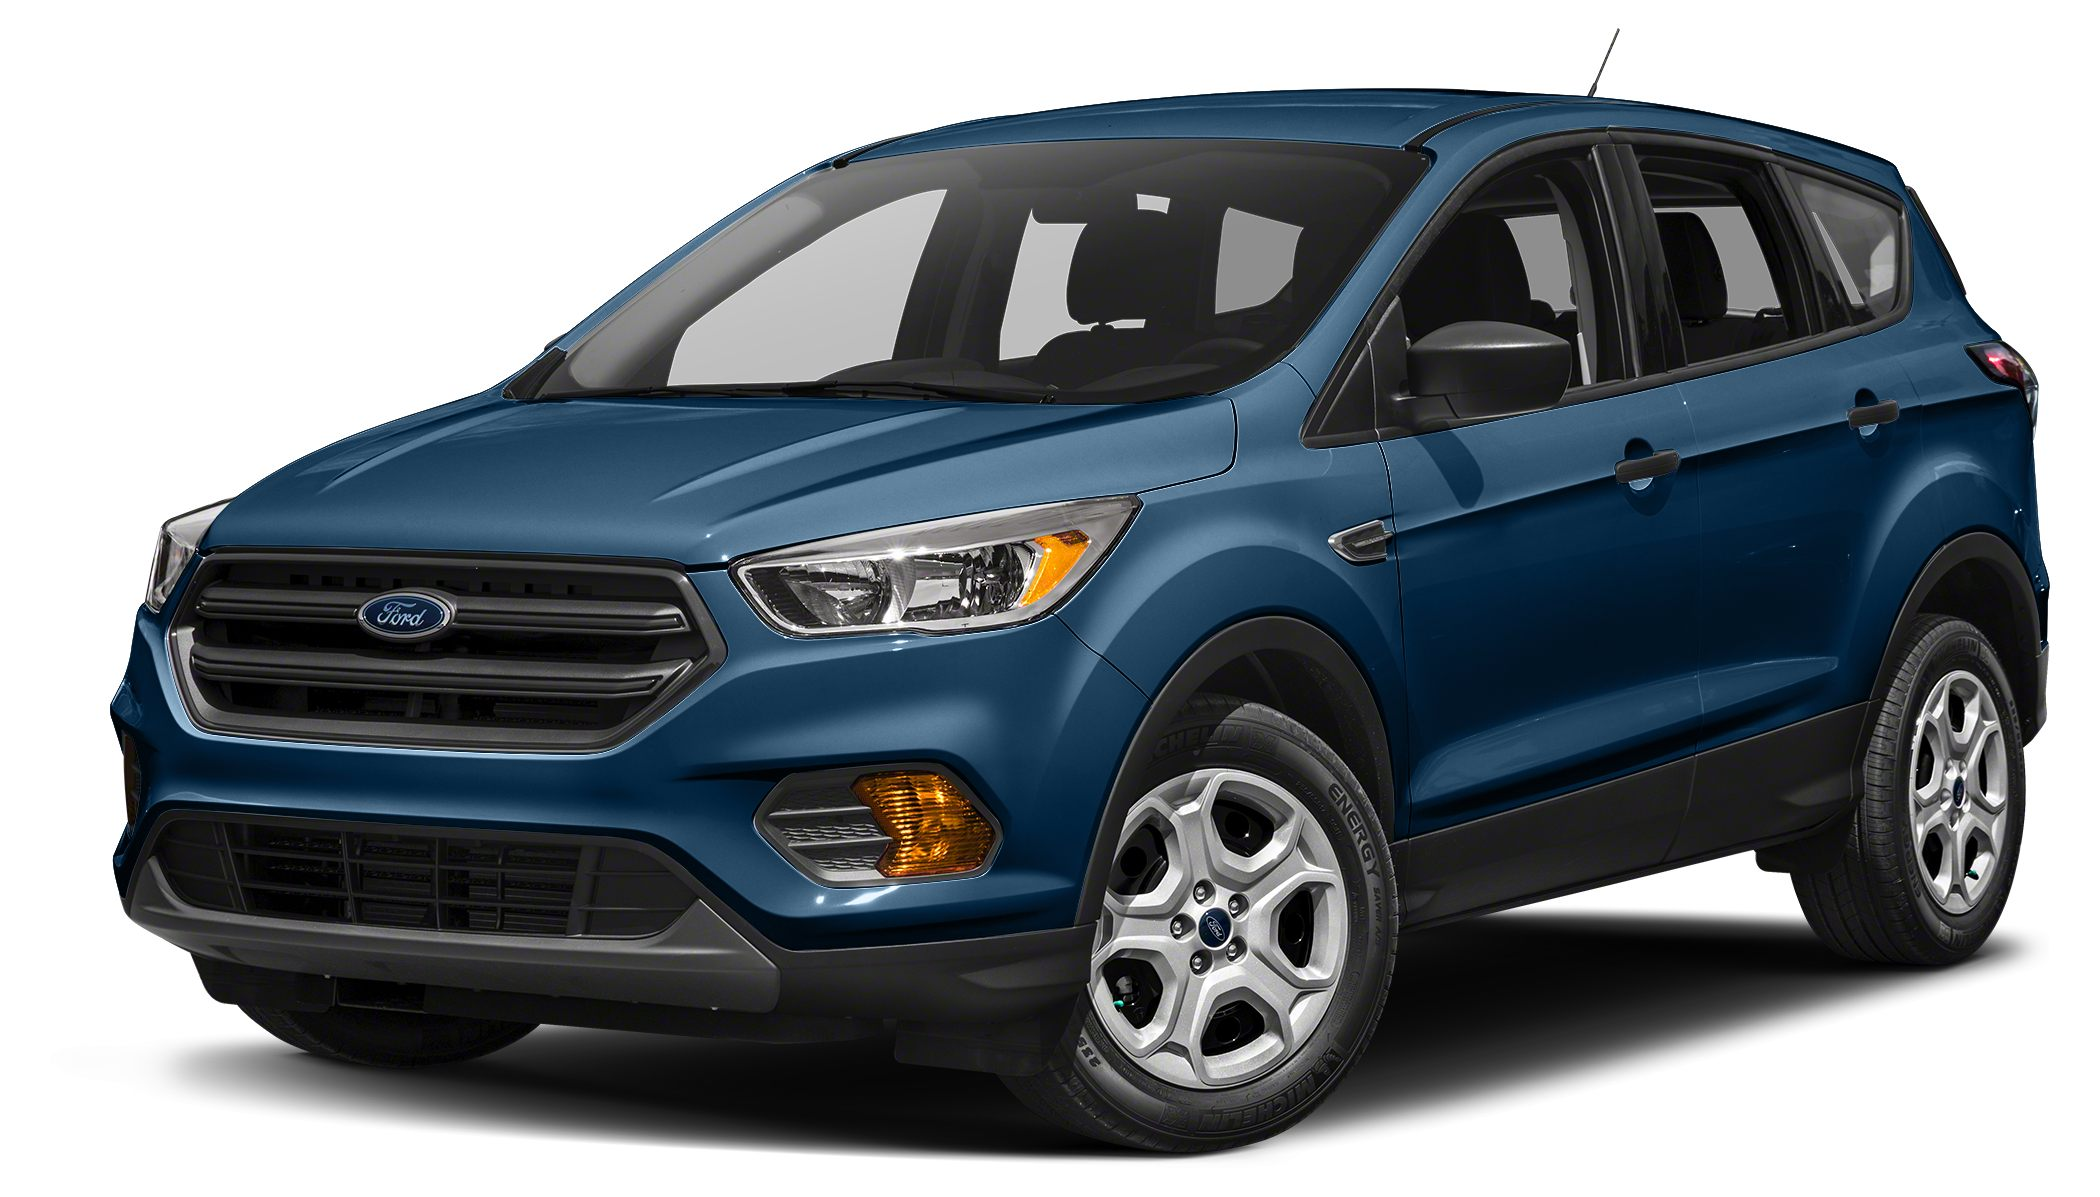 2017 Ford Escape SE Color Blue Stock 7159 VIN 1FMCU9GD6HUA07159